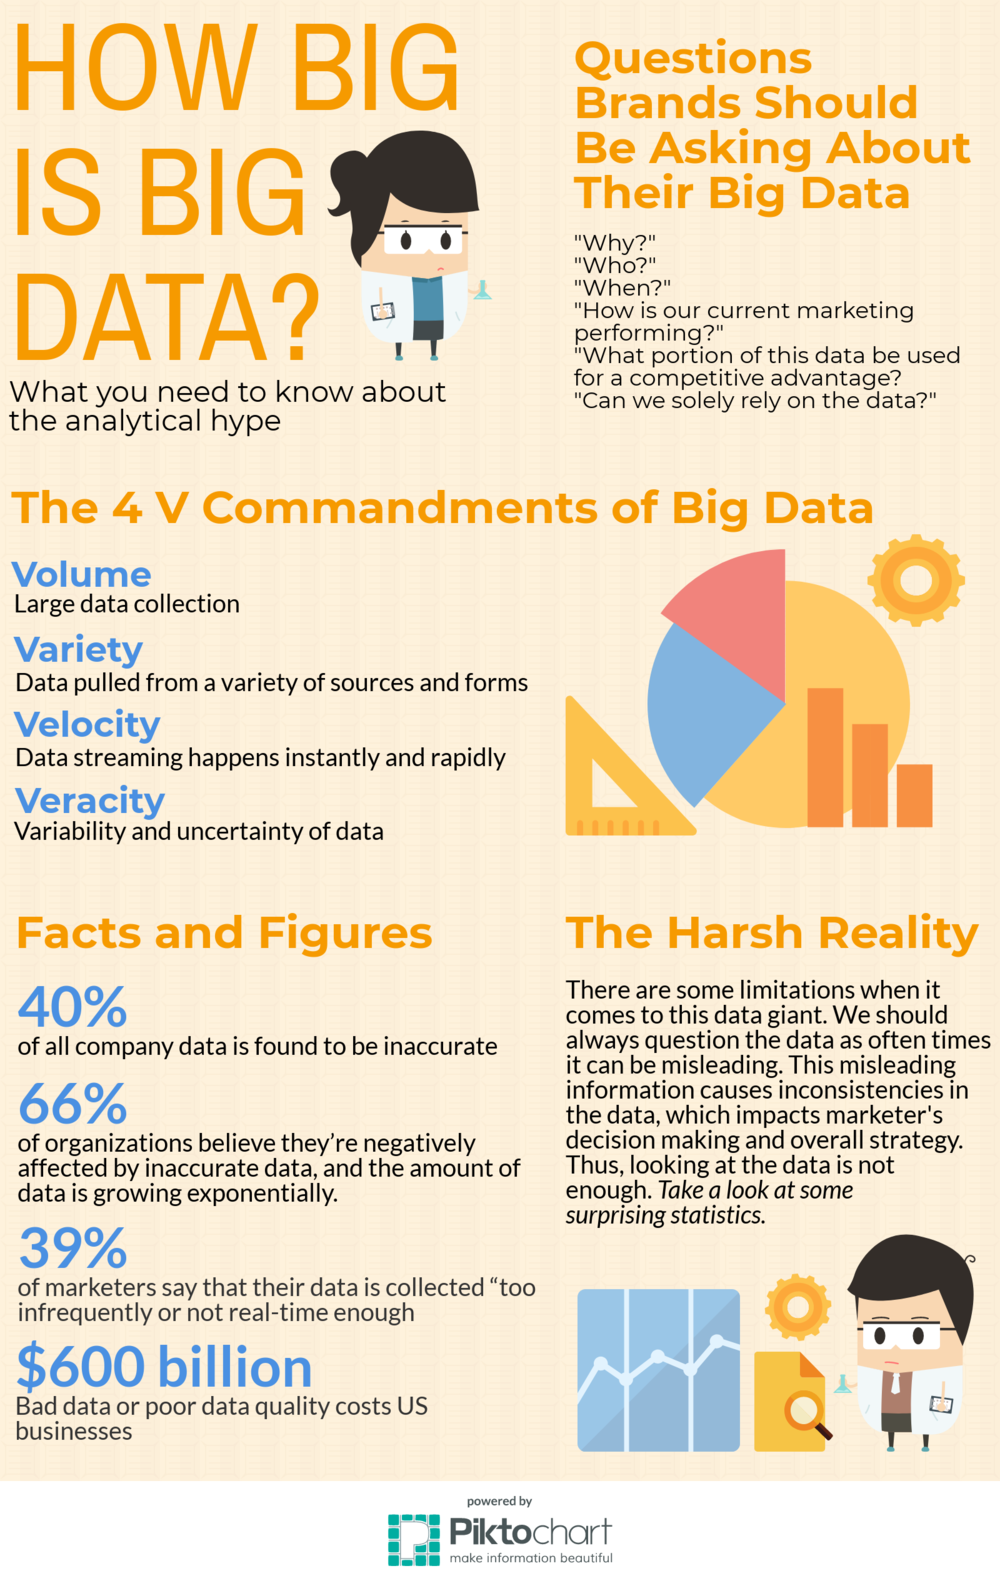 Resources:     http://www.ibmbigdatahub.com/infographic/four-vs-big-data    http://www.thedrum.com/opinion/2015/07/24/questions-every-marketer-should-ask-their-big-data-investments    https://www.ciklum.com/blog/limitations-of-big-data-analytics/    https://www.waterfordtechnologies.com/big-data-interesting-facts/